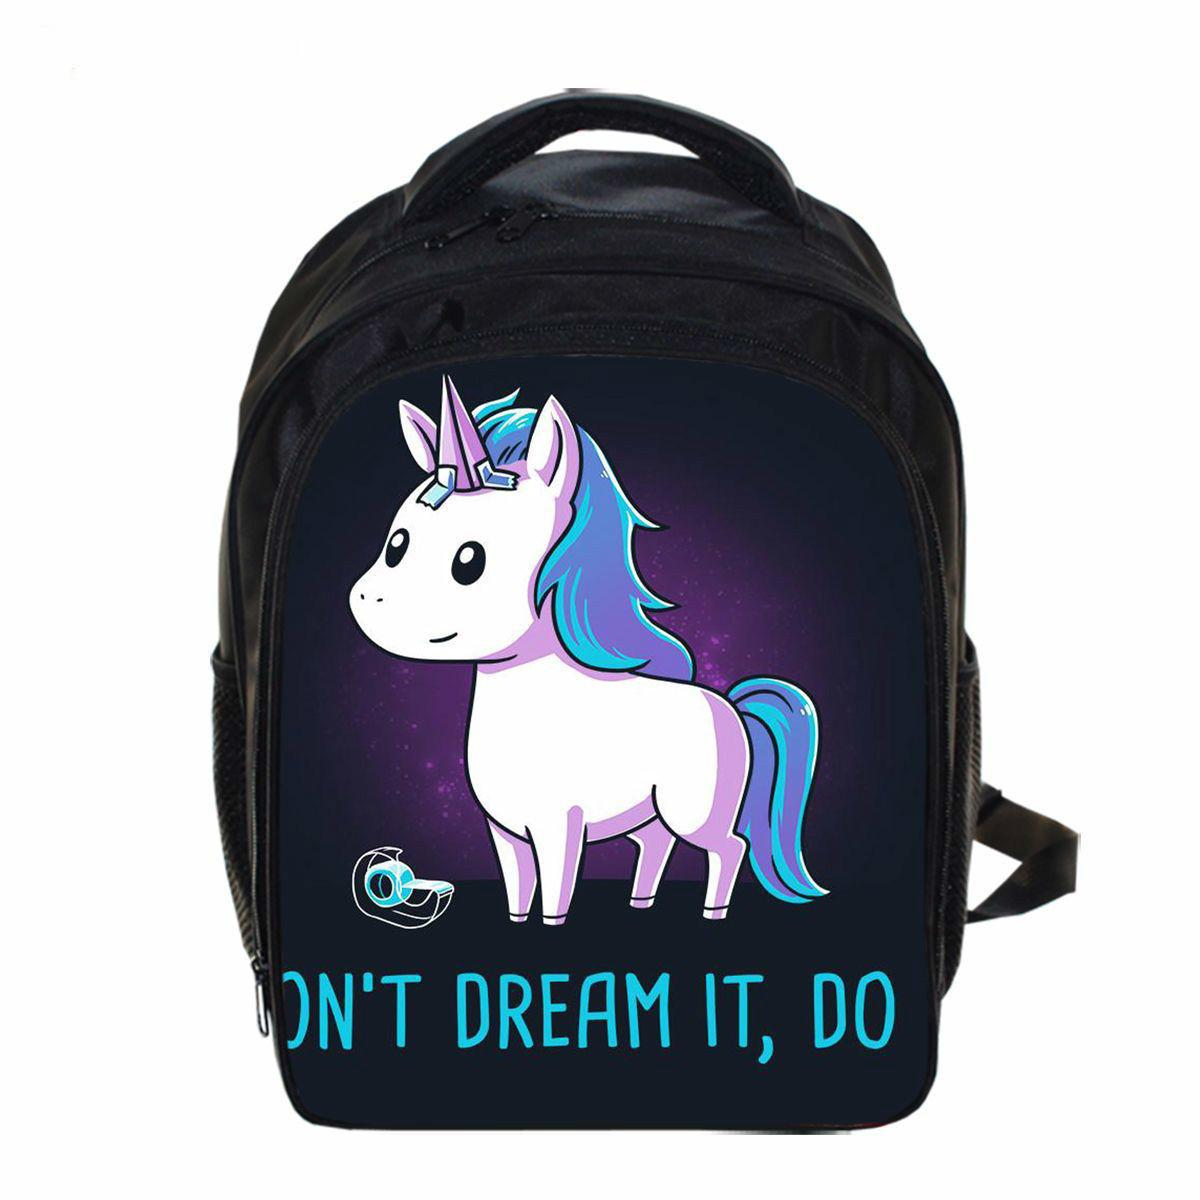 Children Shoulder School Bag Different Variations Unicorn Lovely Primary  Students Teenager Backpacks Private Picture Customized Cute Backpacks For  Cheap ... fe8320448ed0a